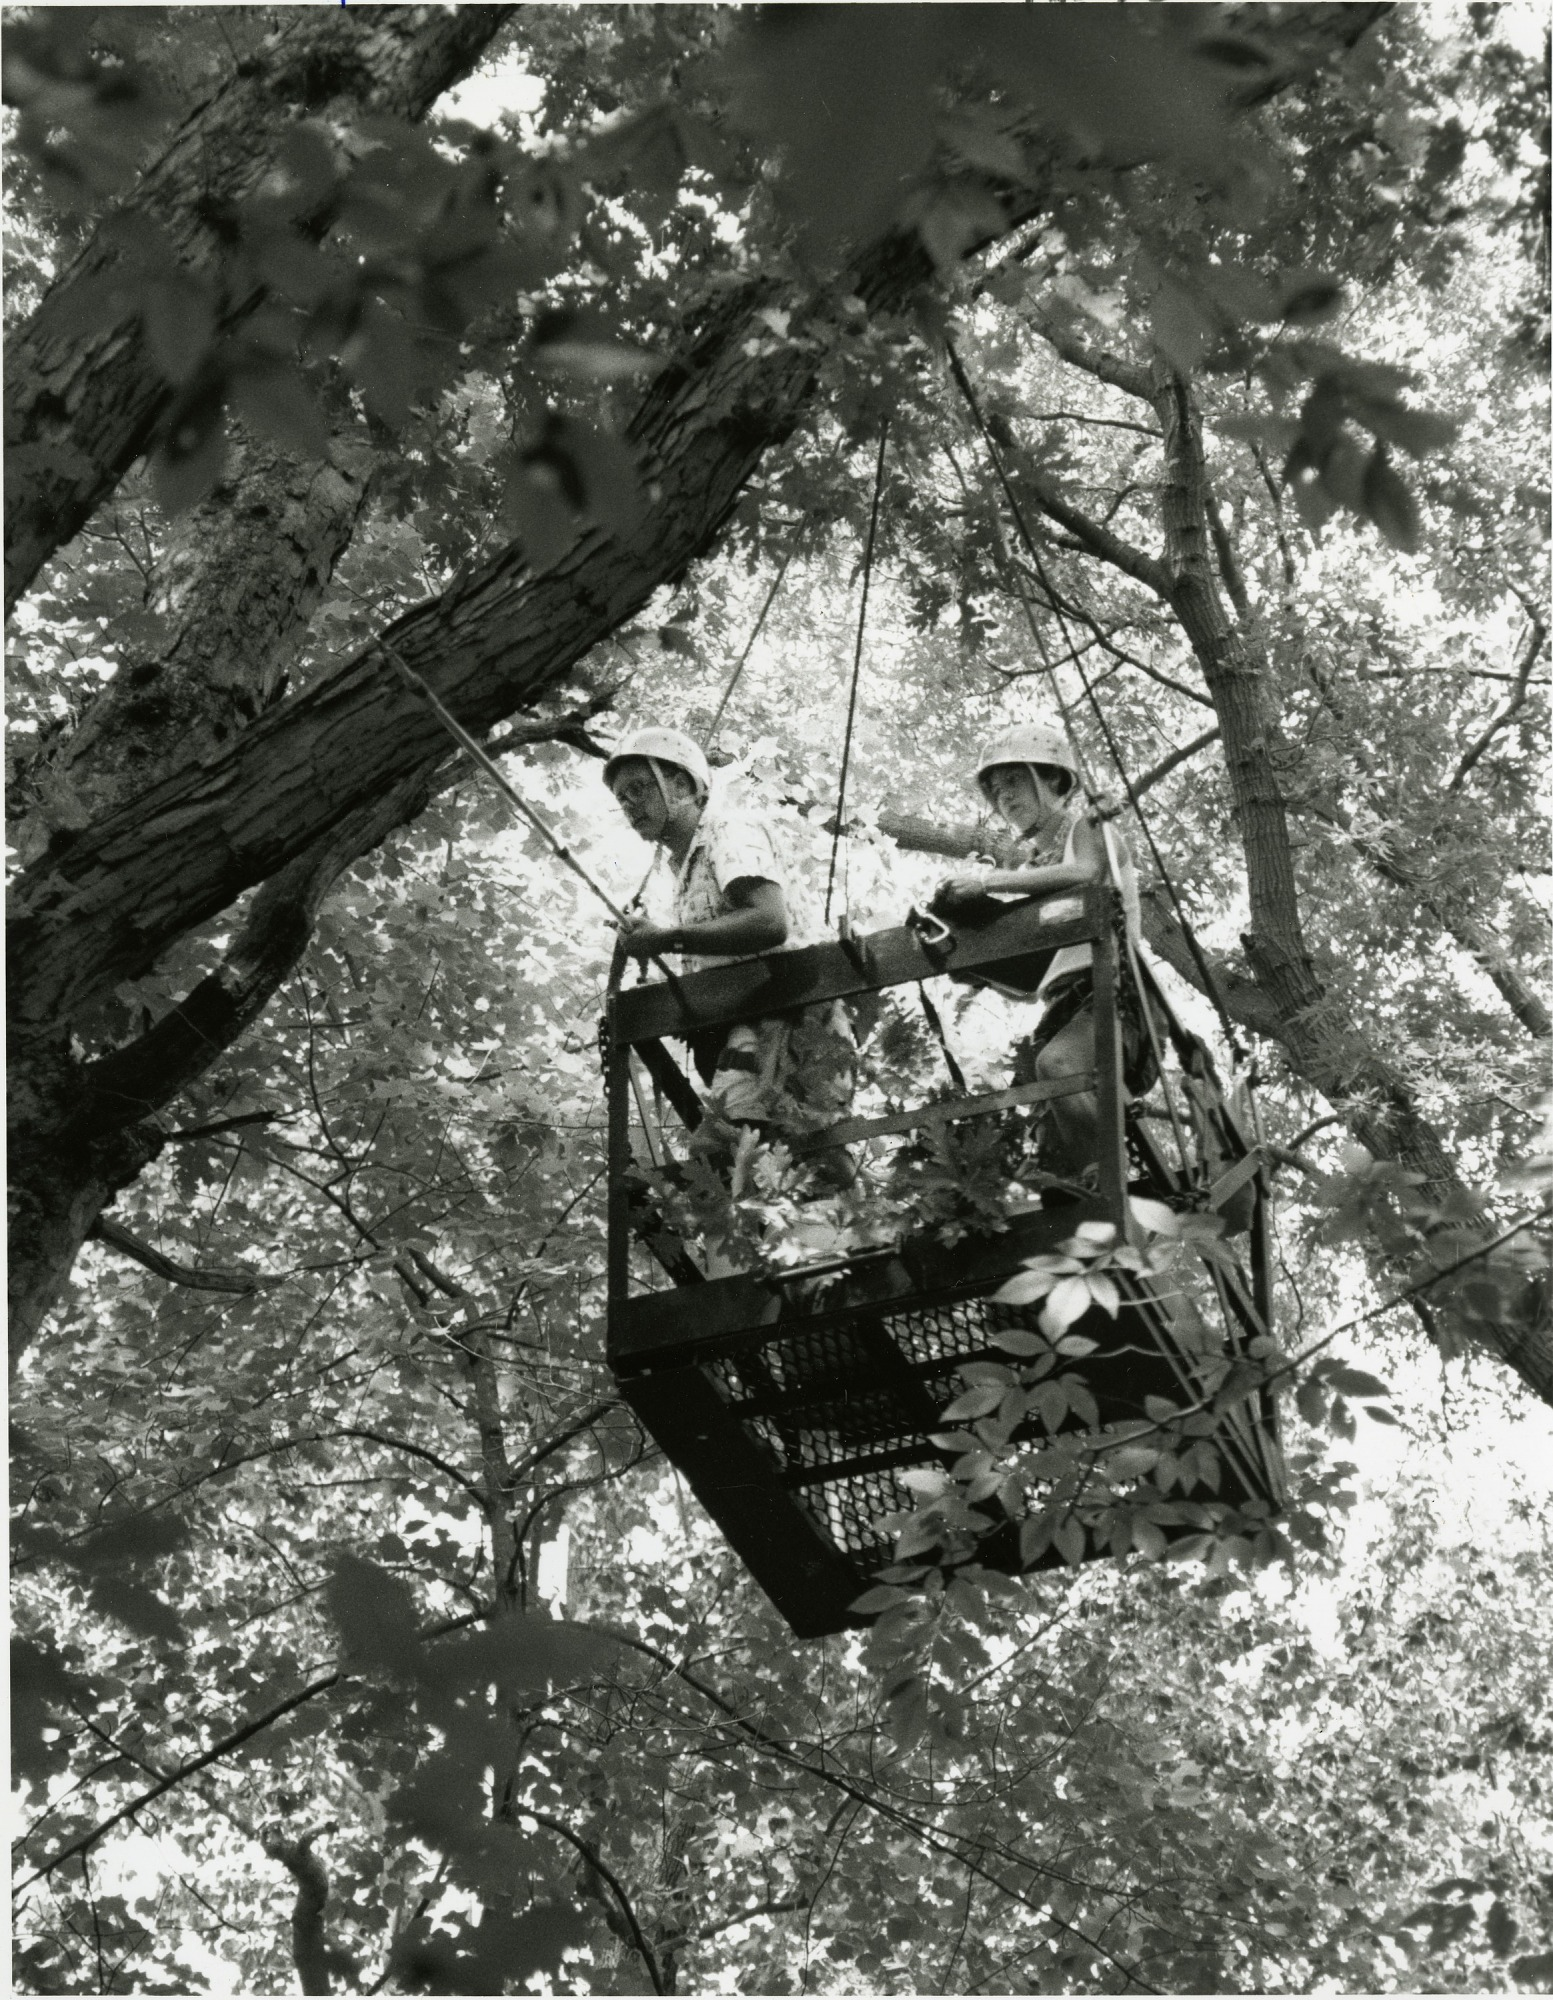 Canopy Crane at SERC, by Tinsley, Jeff, 1994, Smithsonian Archives - History Div, SIA2011-2236.